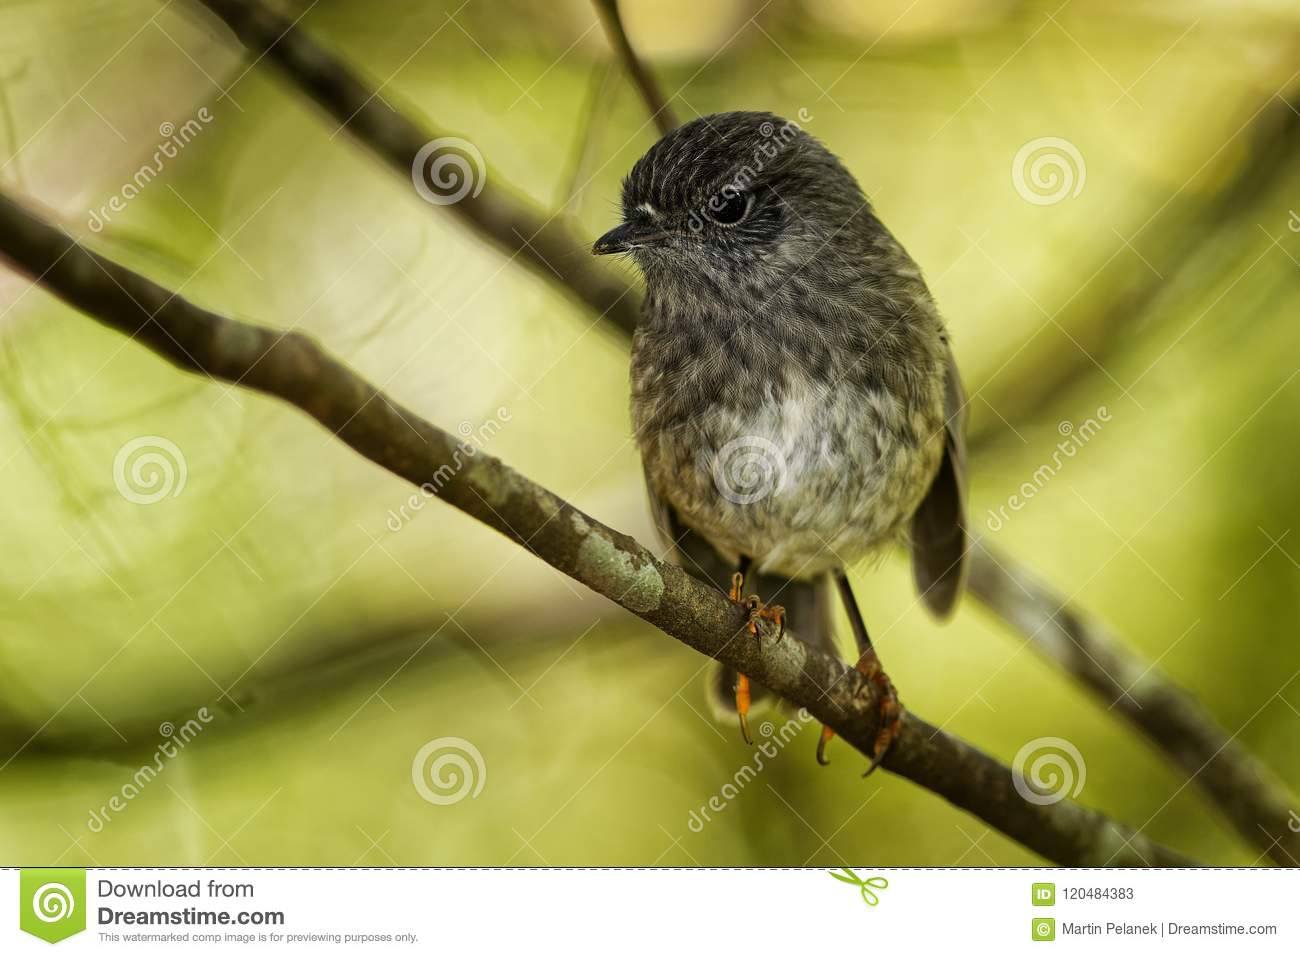 Petroica longipes - North Island Robin - toutouwai - endemic New Zealand forest bird sitting on the branch in the forest